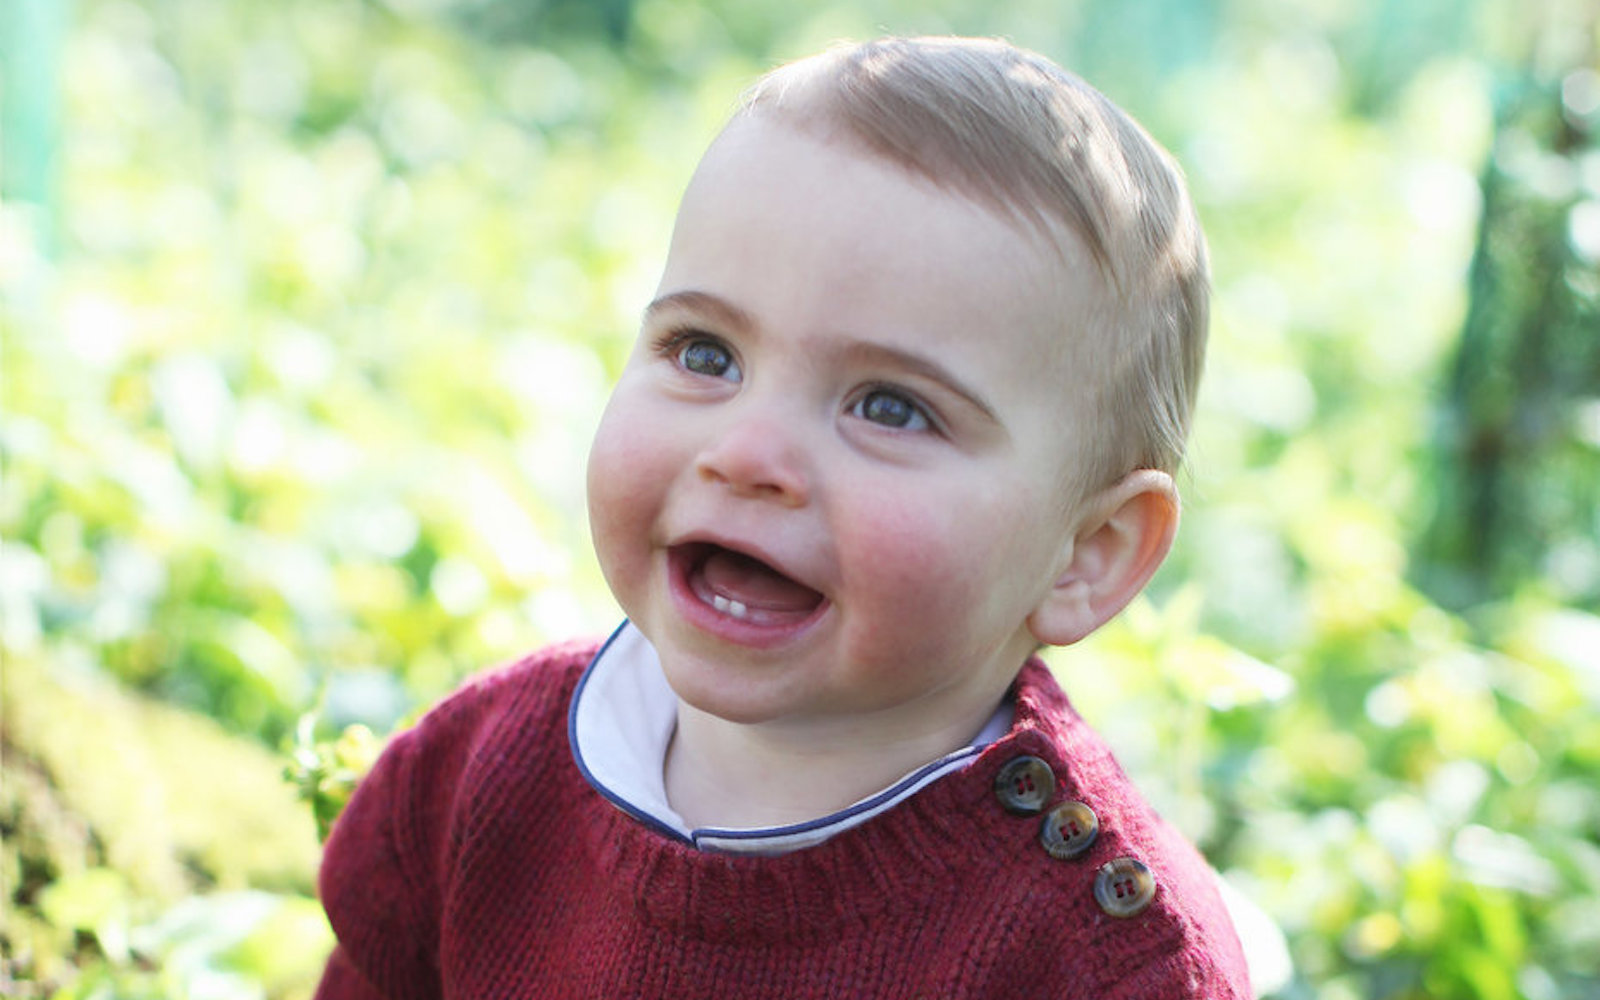 Kate Middleton's photo of son Prince Louis for his first birthday